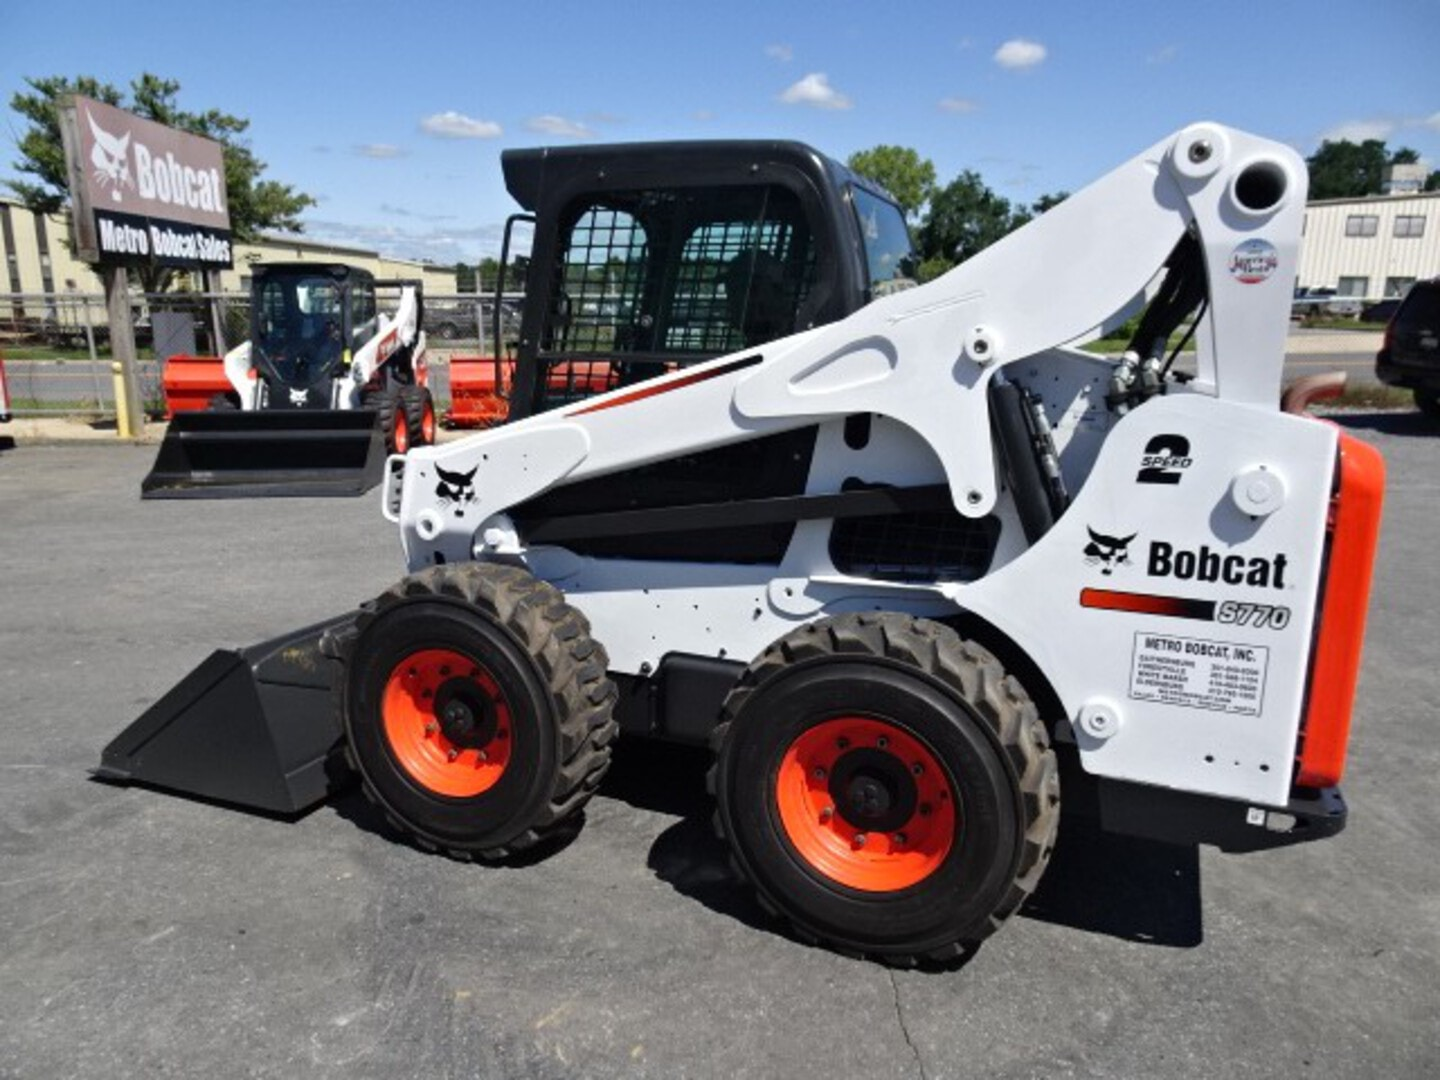 Used, 2015, Bobcat, S770 SKID STEER LOADER - 92 HP TURBO CHARGED KUBOTA V3800 DIESEL ENGINE (iT4) - 1873 HOURS - DELUXE KEYLESS START - HIGH FLOW W/7 PIN ATTACHMENT CONTROL KIT, Skid Steers